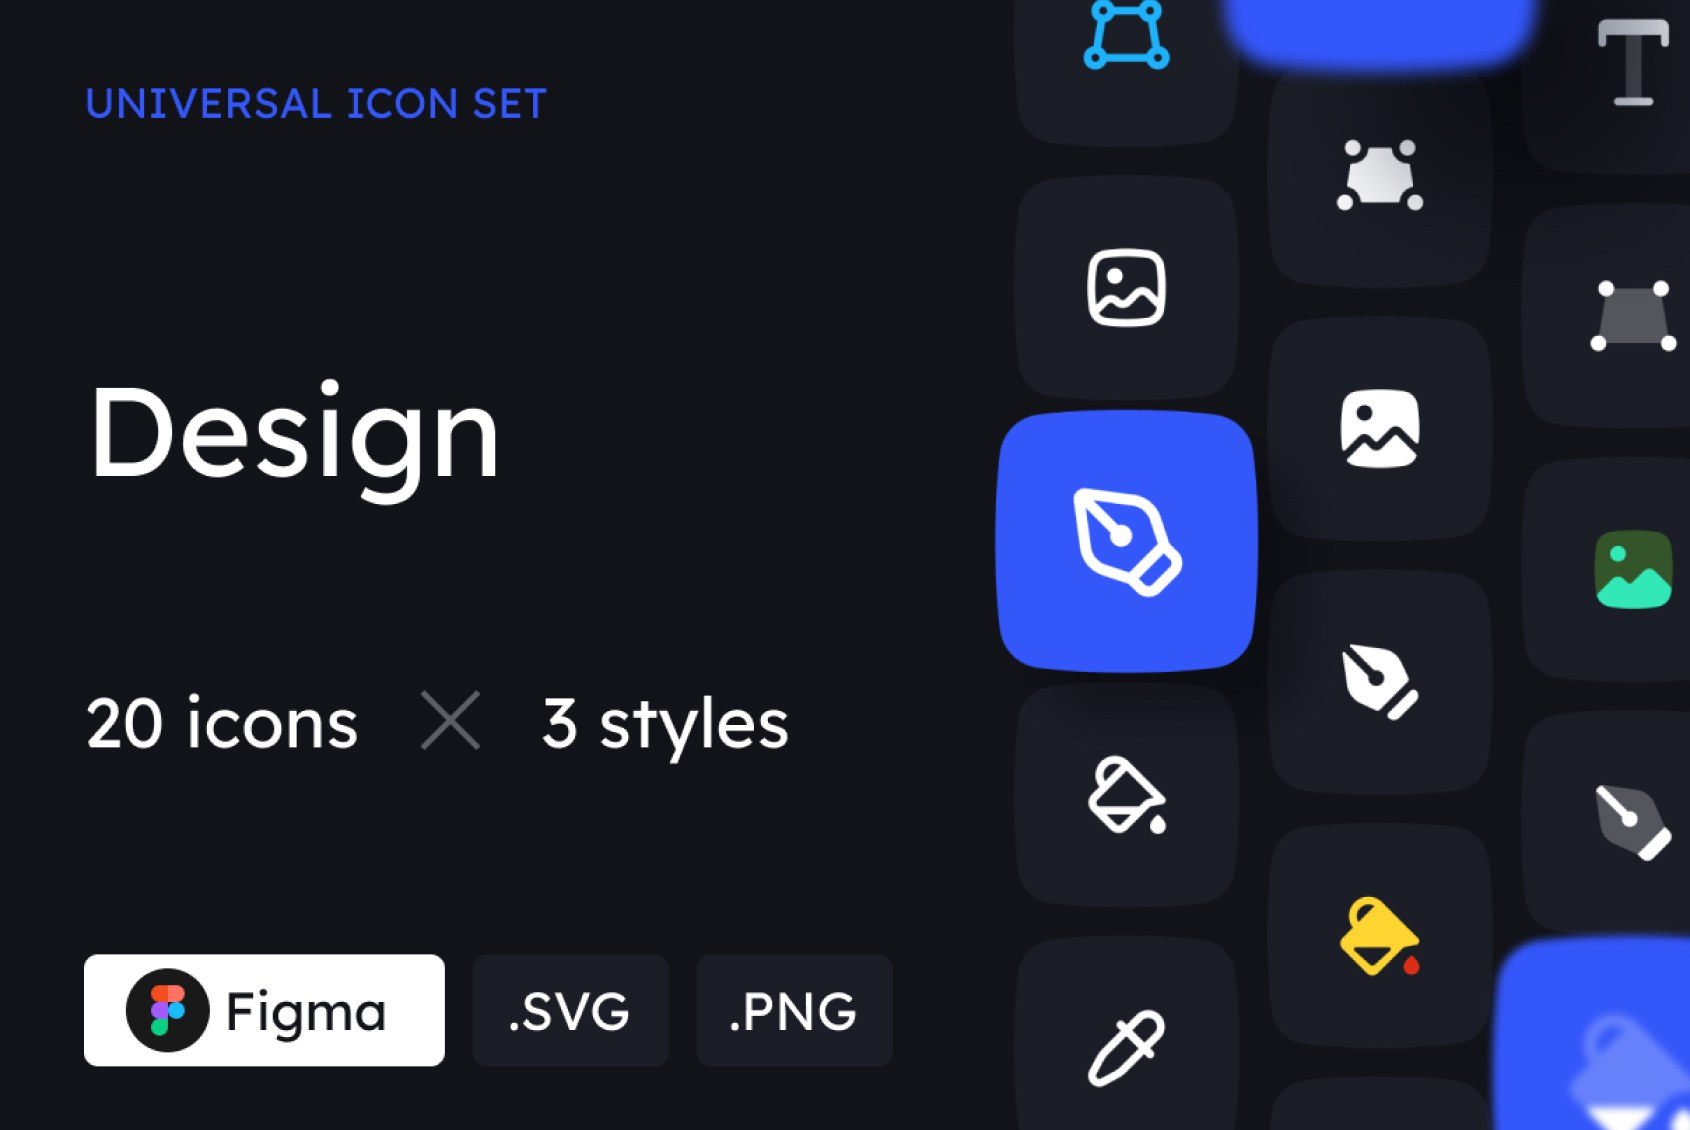 Design Icons in 3 styles